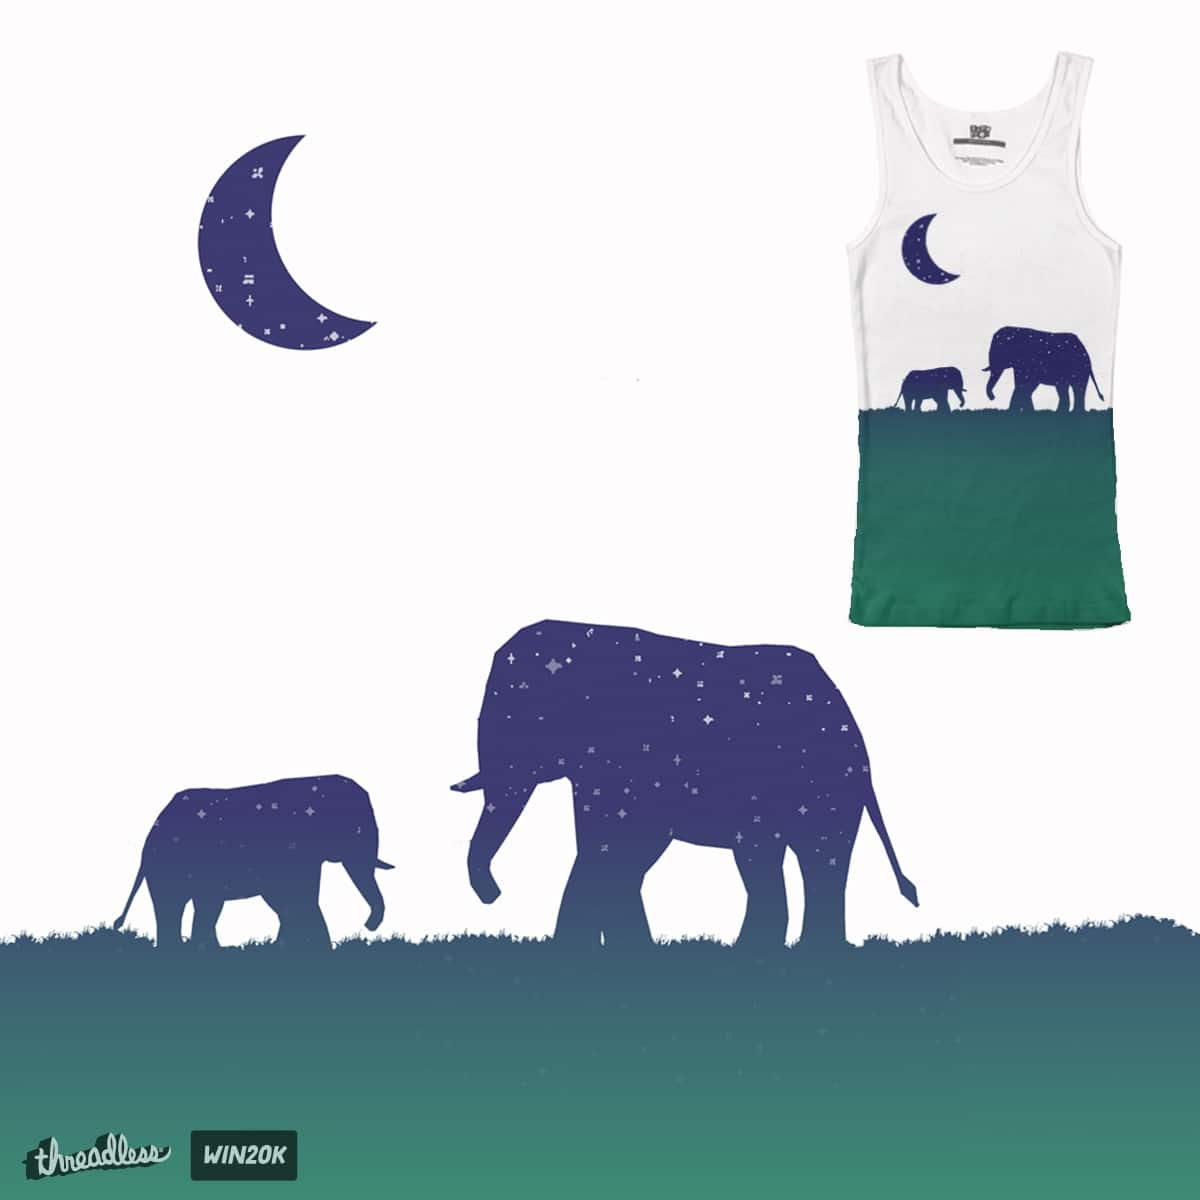 Elephant Silhouette by Sloganart on Threadless